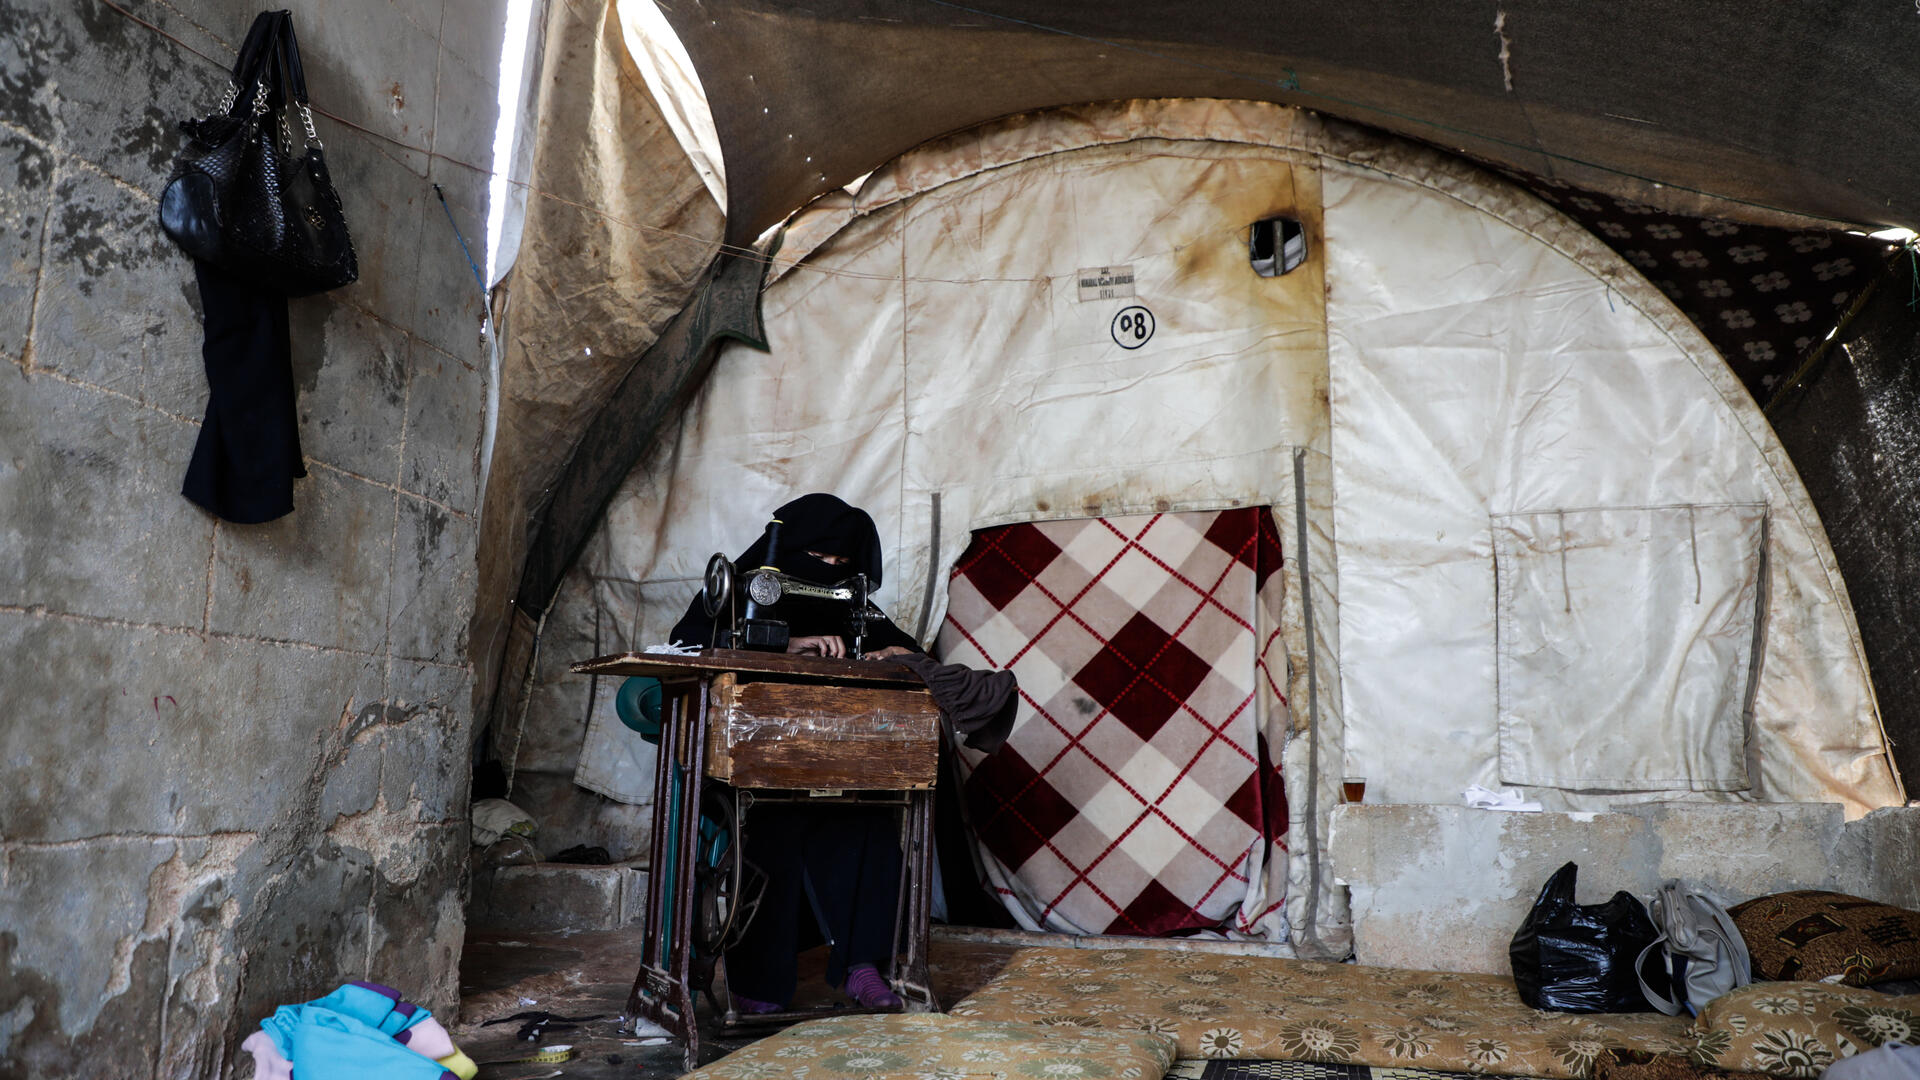 Wa'ad sews face masks at her sewing machine in her makeshift shelter in northwestern Syria.